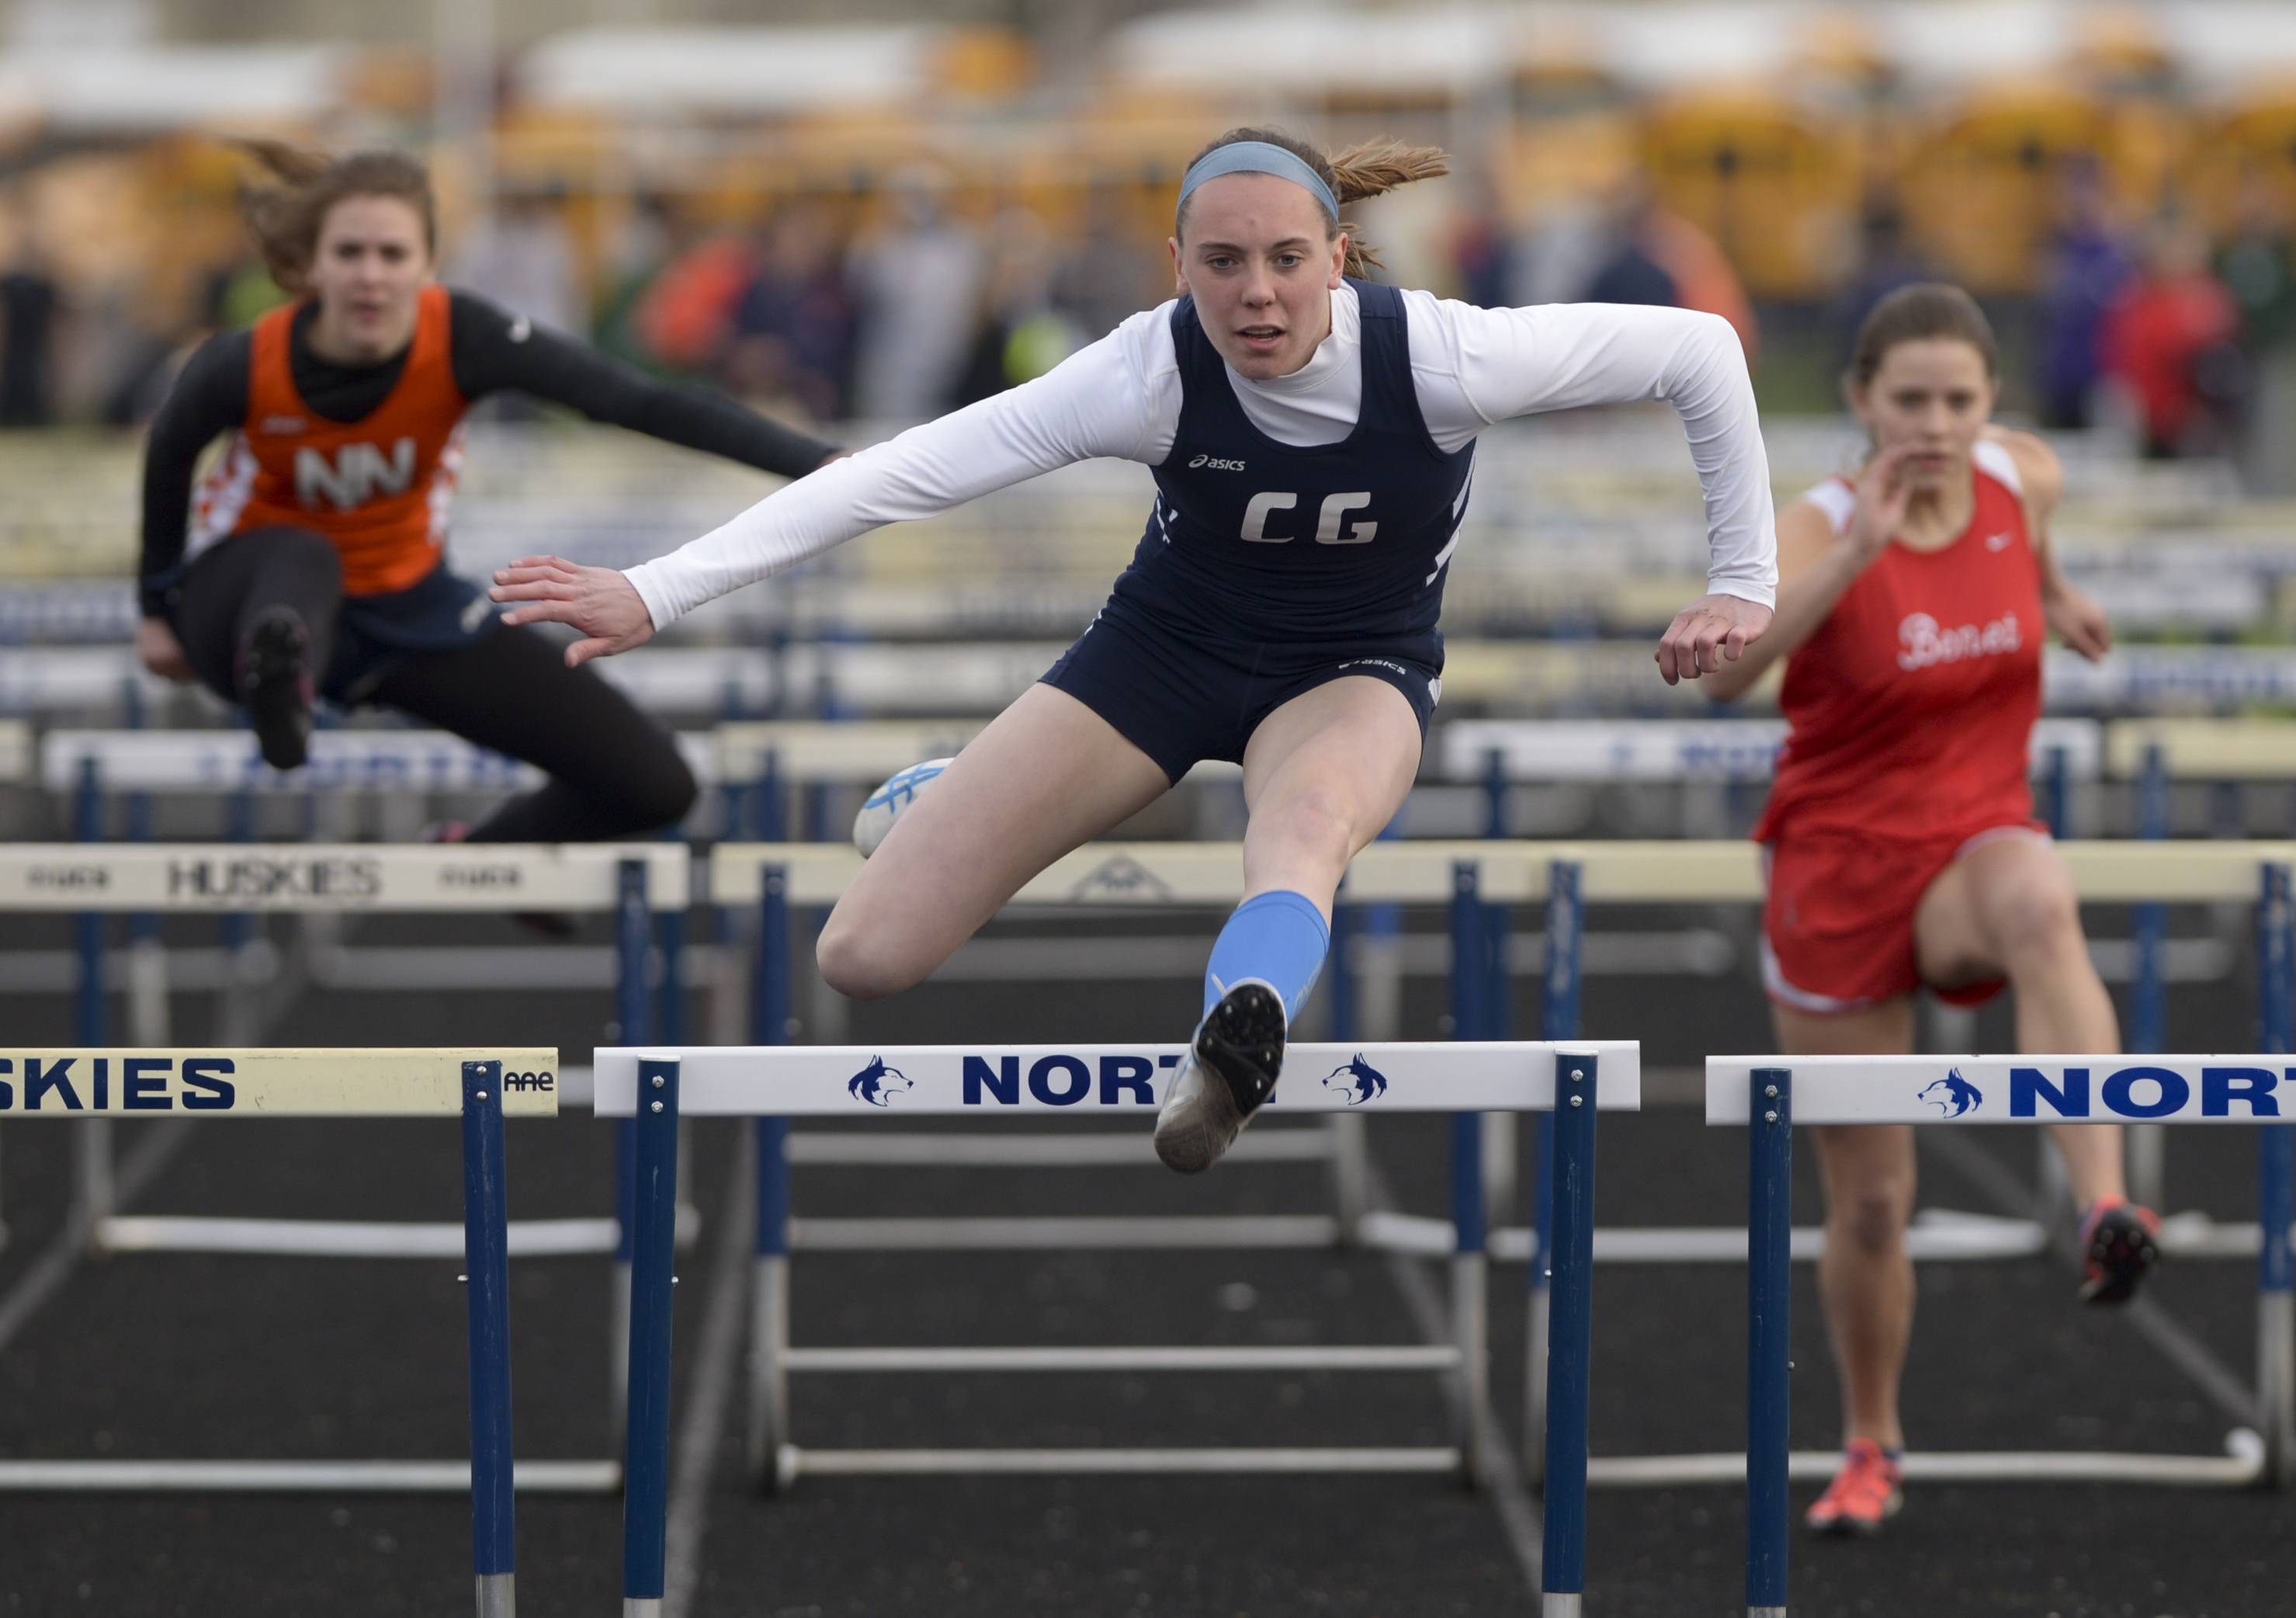 Cary Grove's Morgan Schulz competes in the 100-meter hurdles during the Gus Scott Track and Field Invitational at Naperville North Thursday.